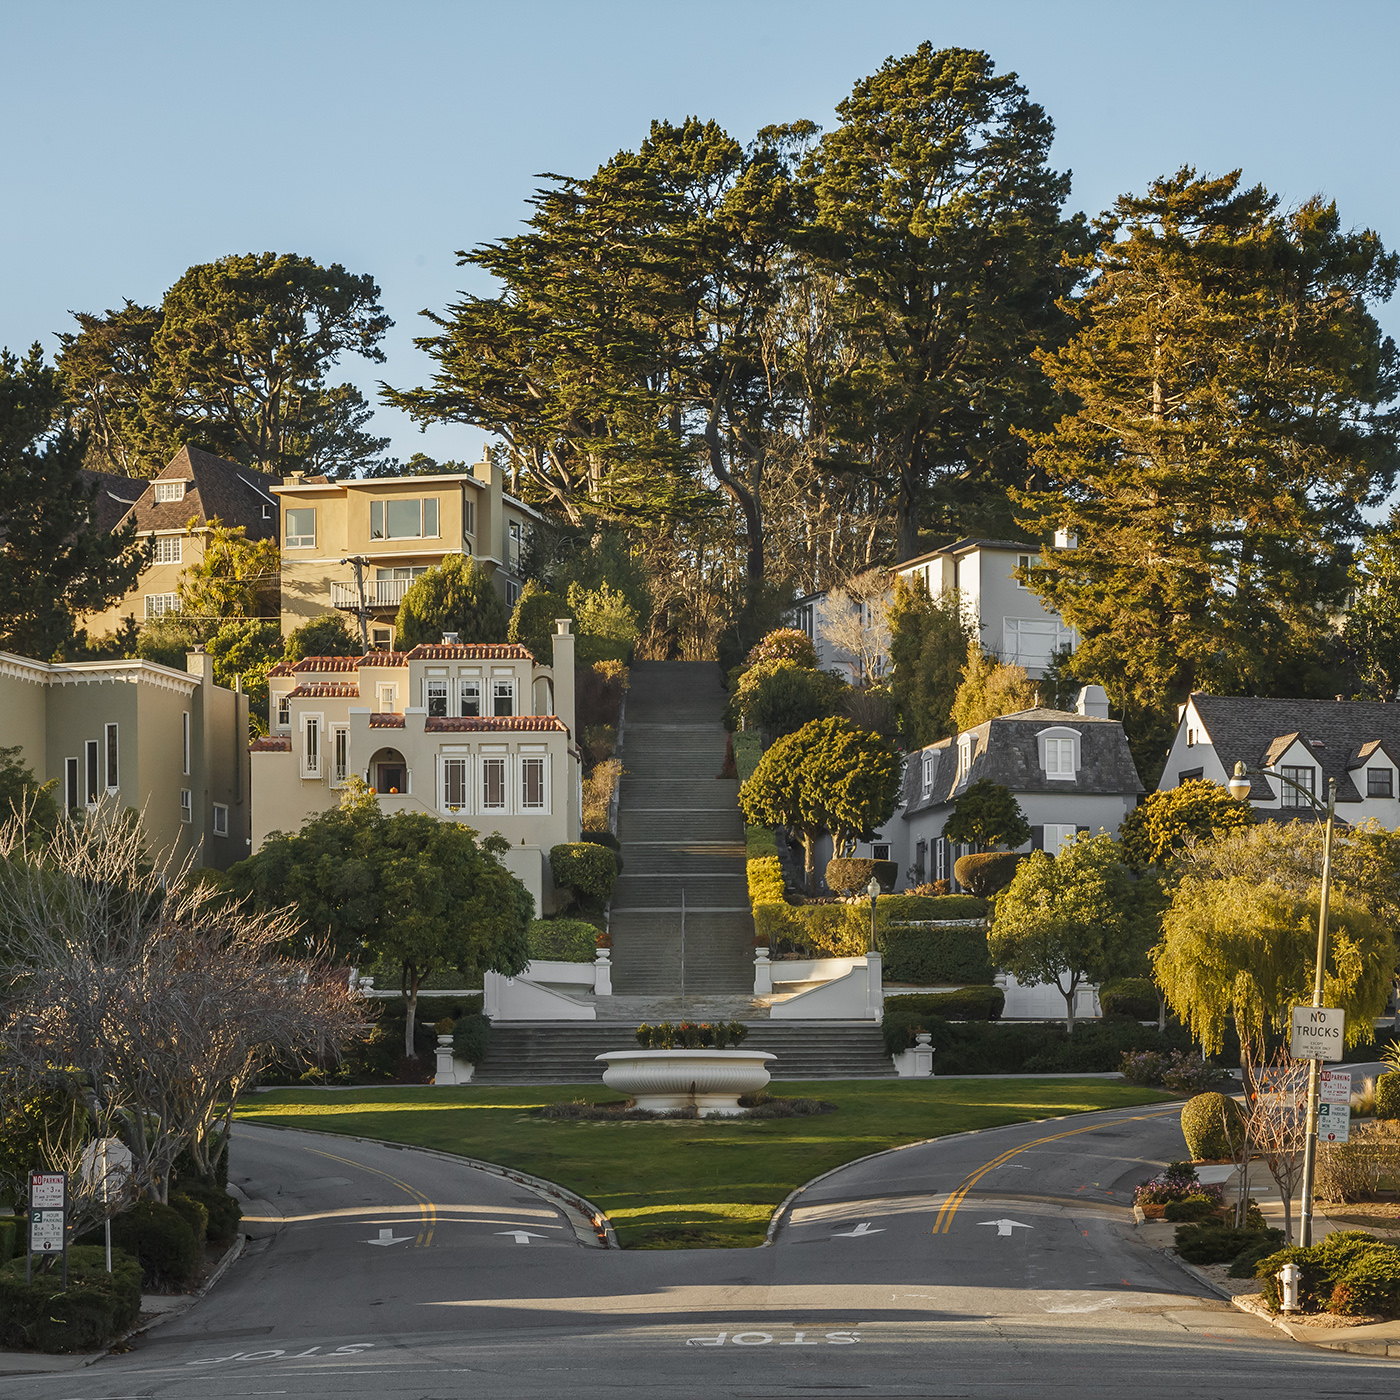 Golden Gate Heights Real Estate, Homes & Houses for Sale, San Francisco CA | PARAGON Real Estate Group